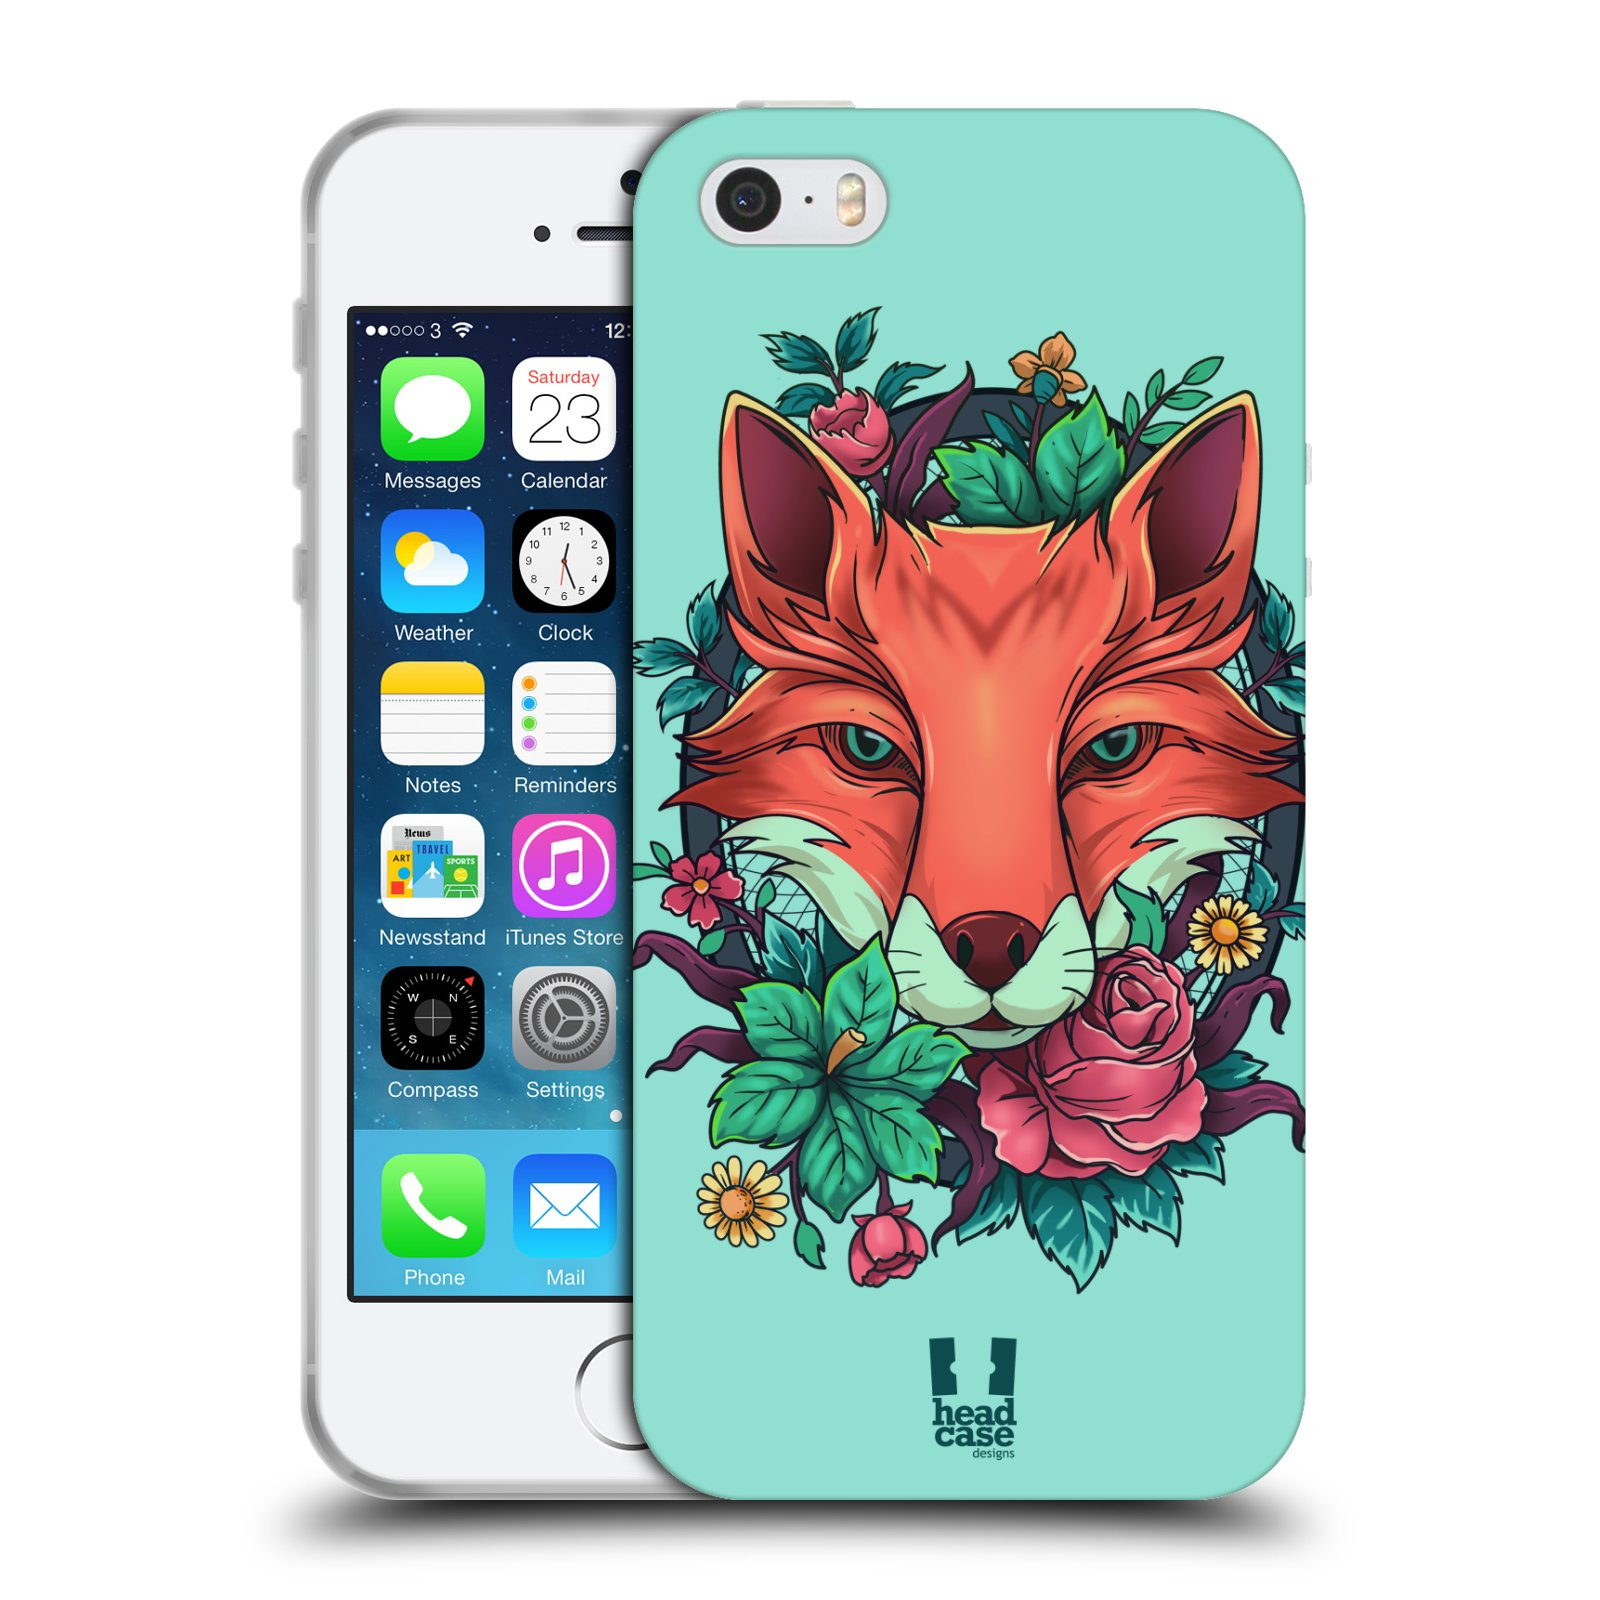 HEAD CASE FLORA AND FAUNA TPU GEL BACK CASE COVER FOR APPLE iPHONE 5S